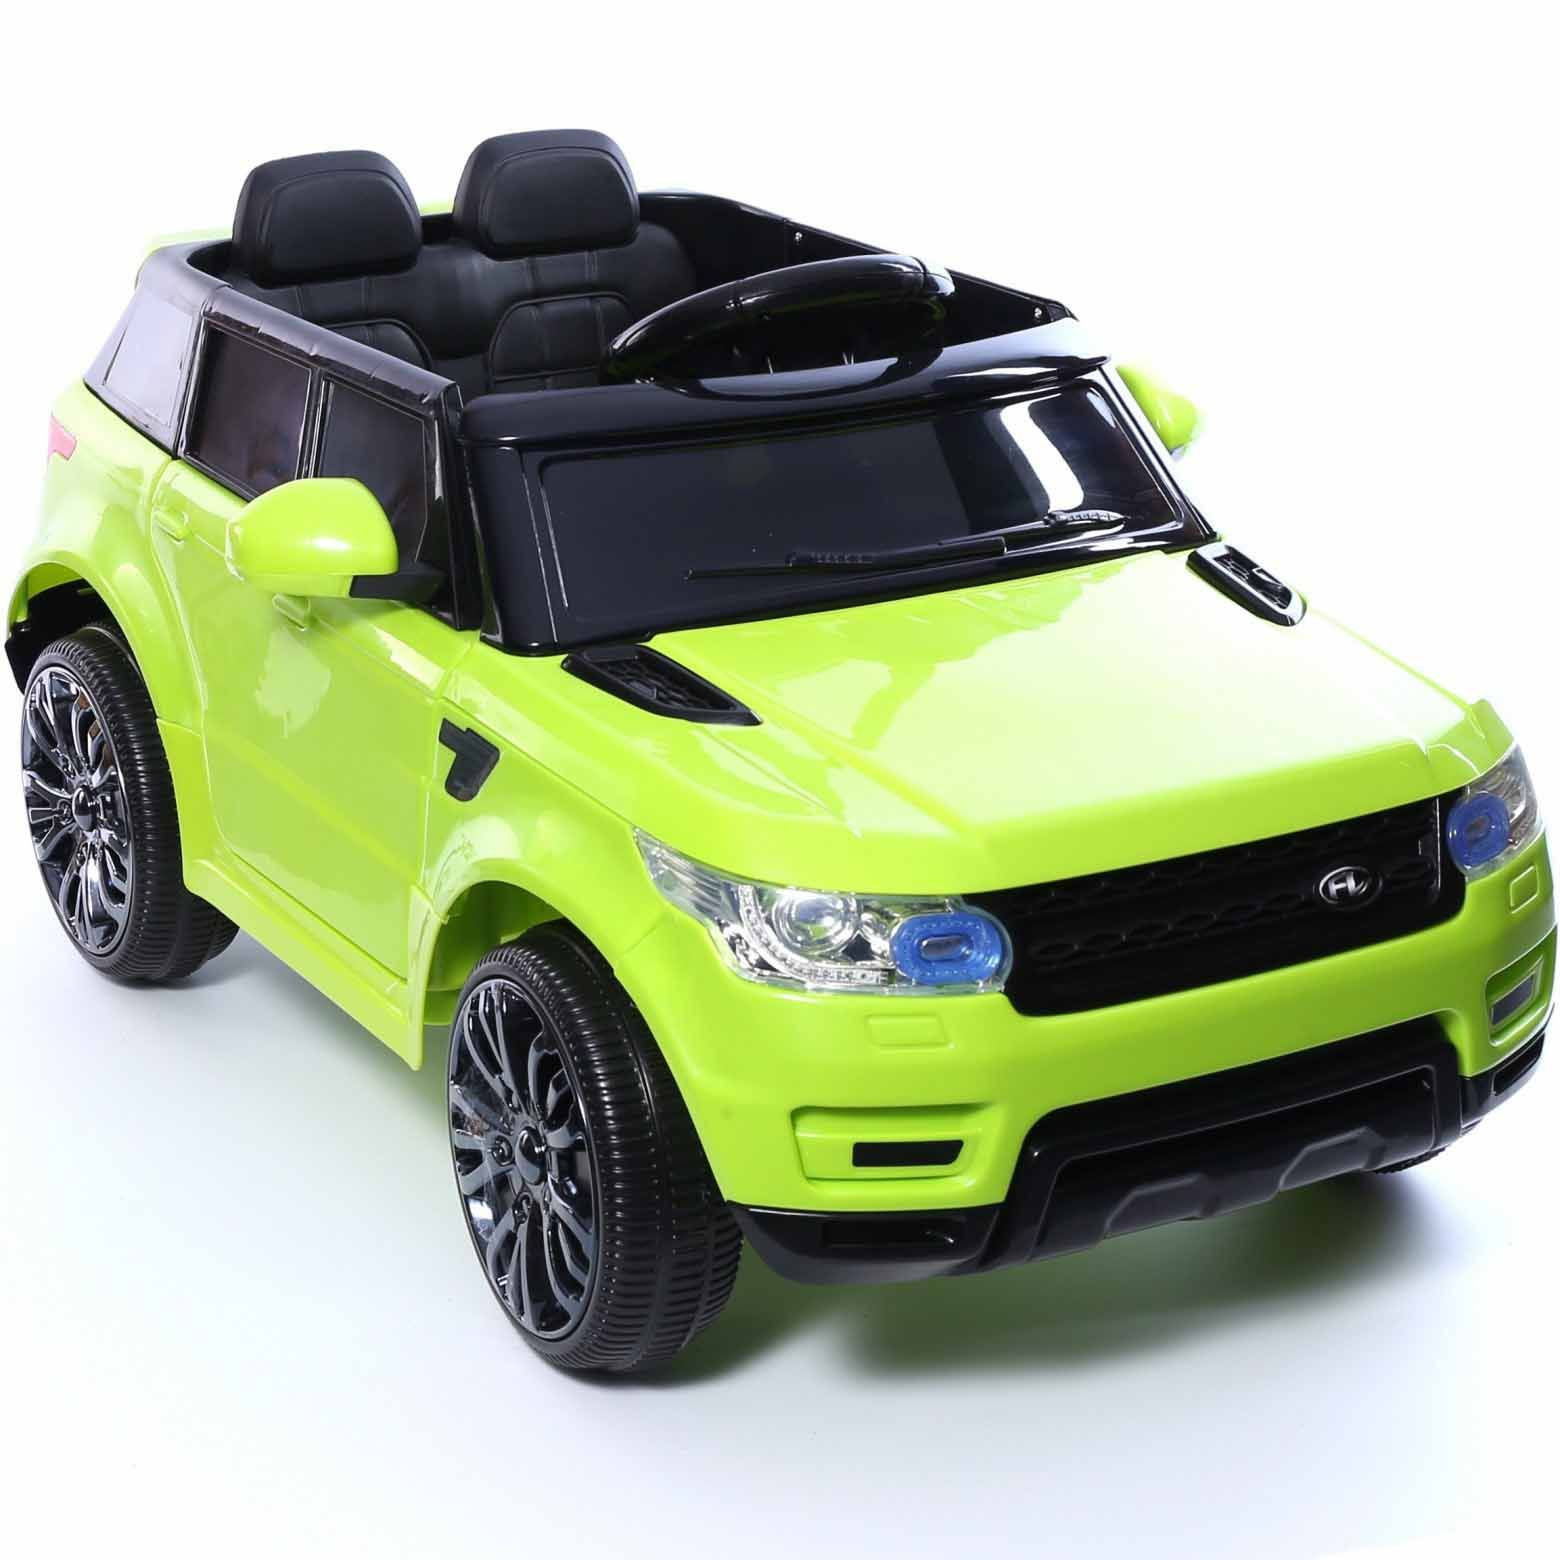 Range Rover Style Green Range rover, Car, Electric cars